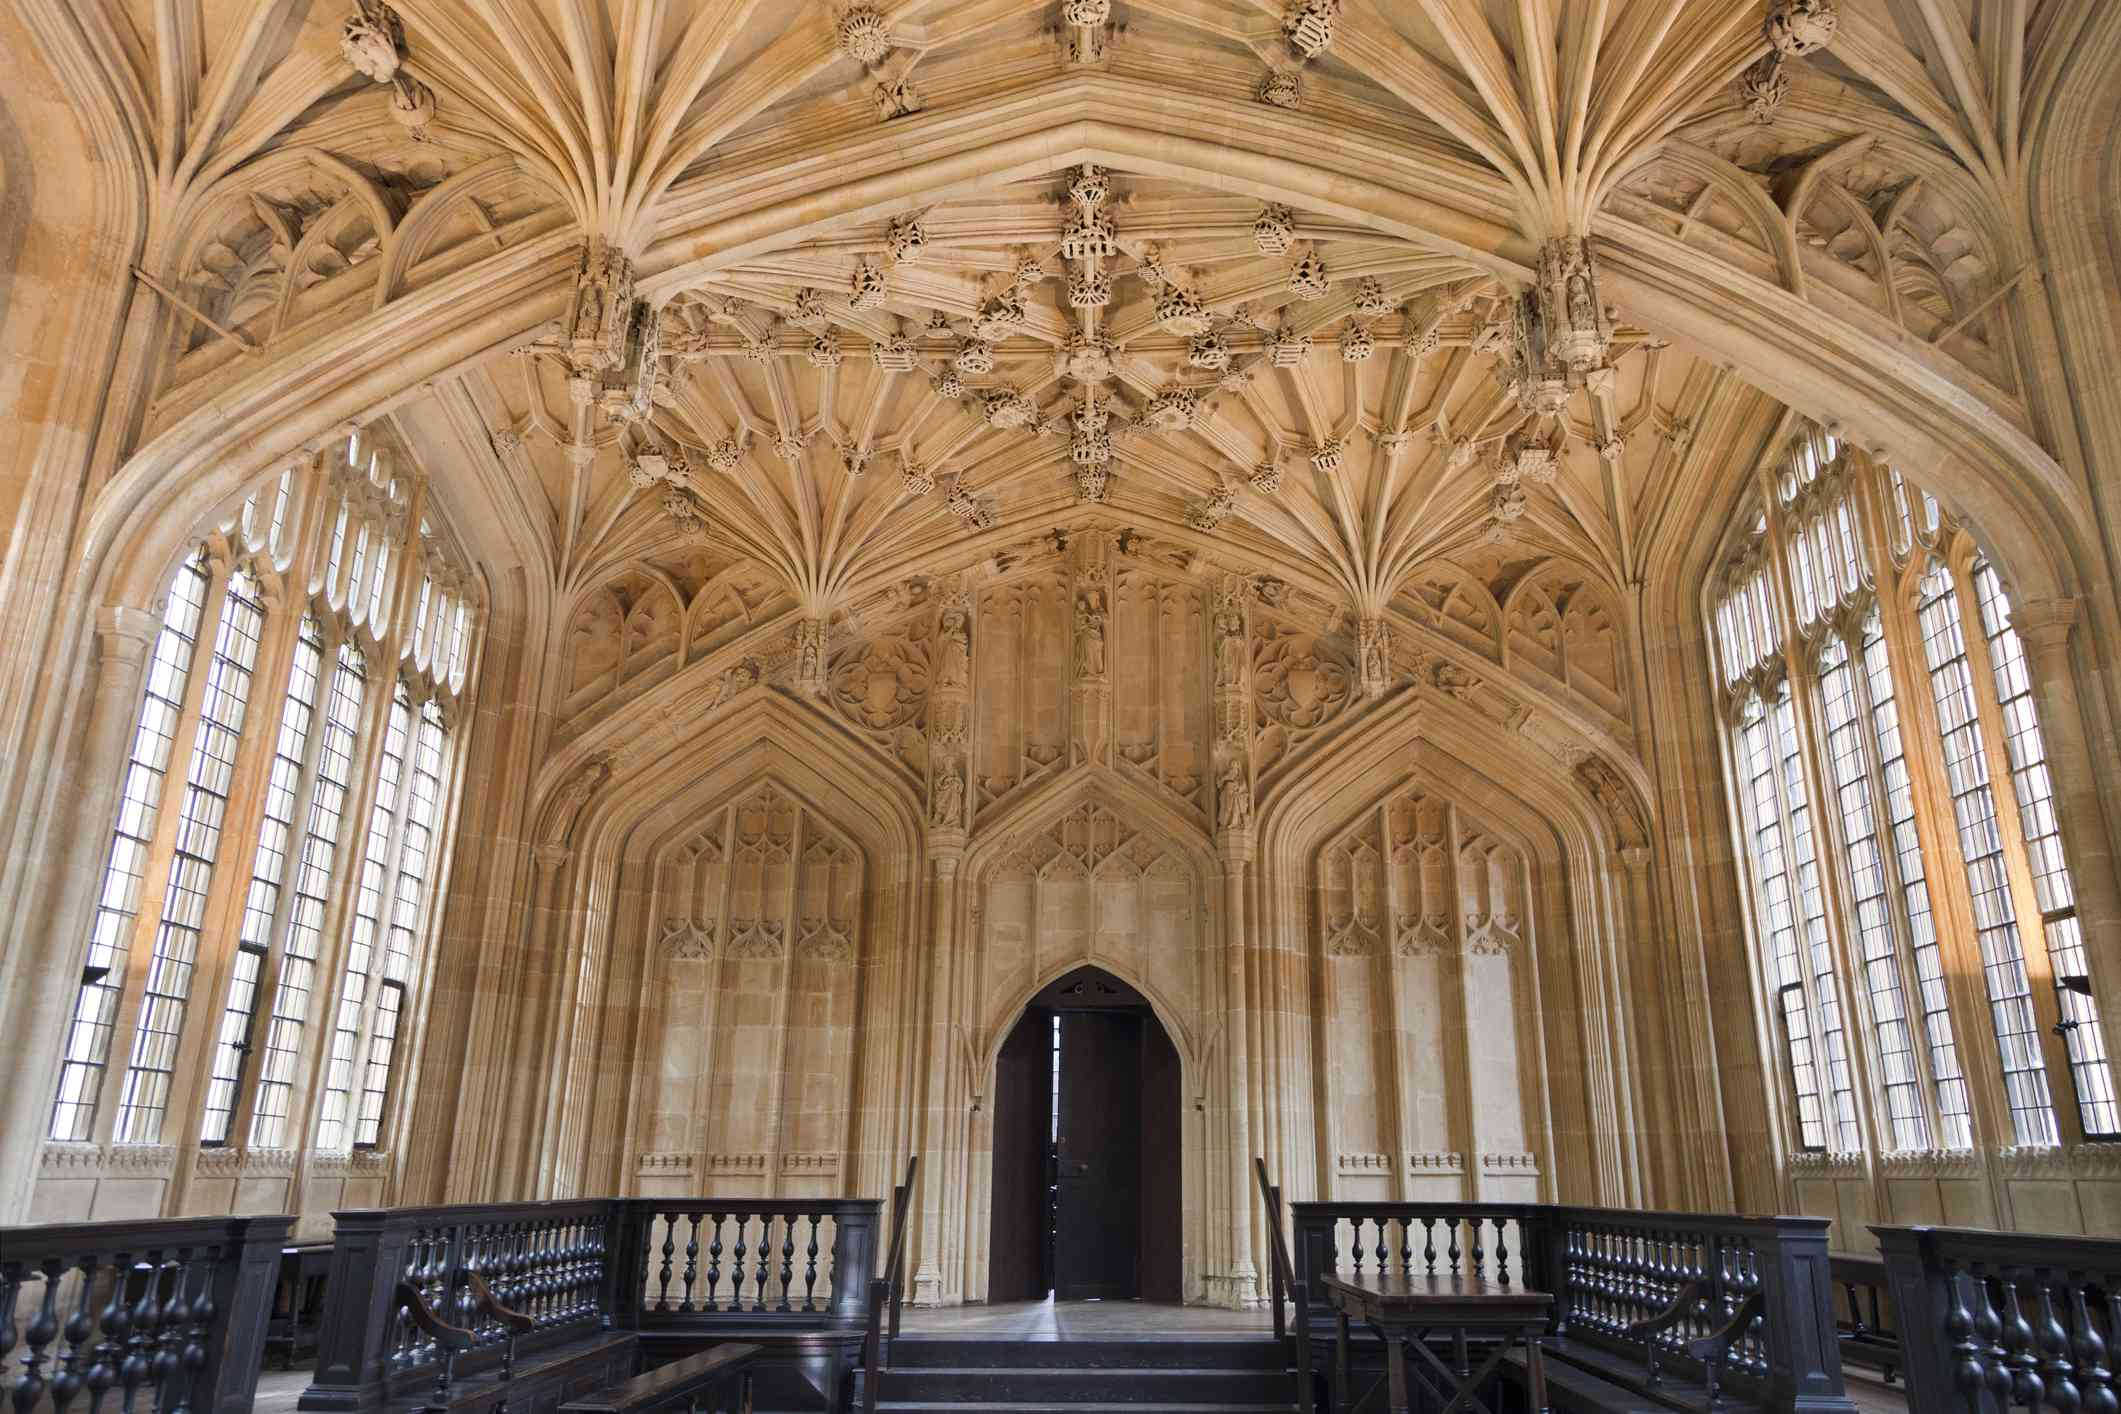 The Divinity School of the Bodleian Library